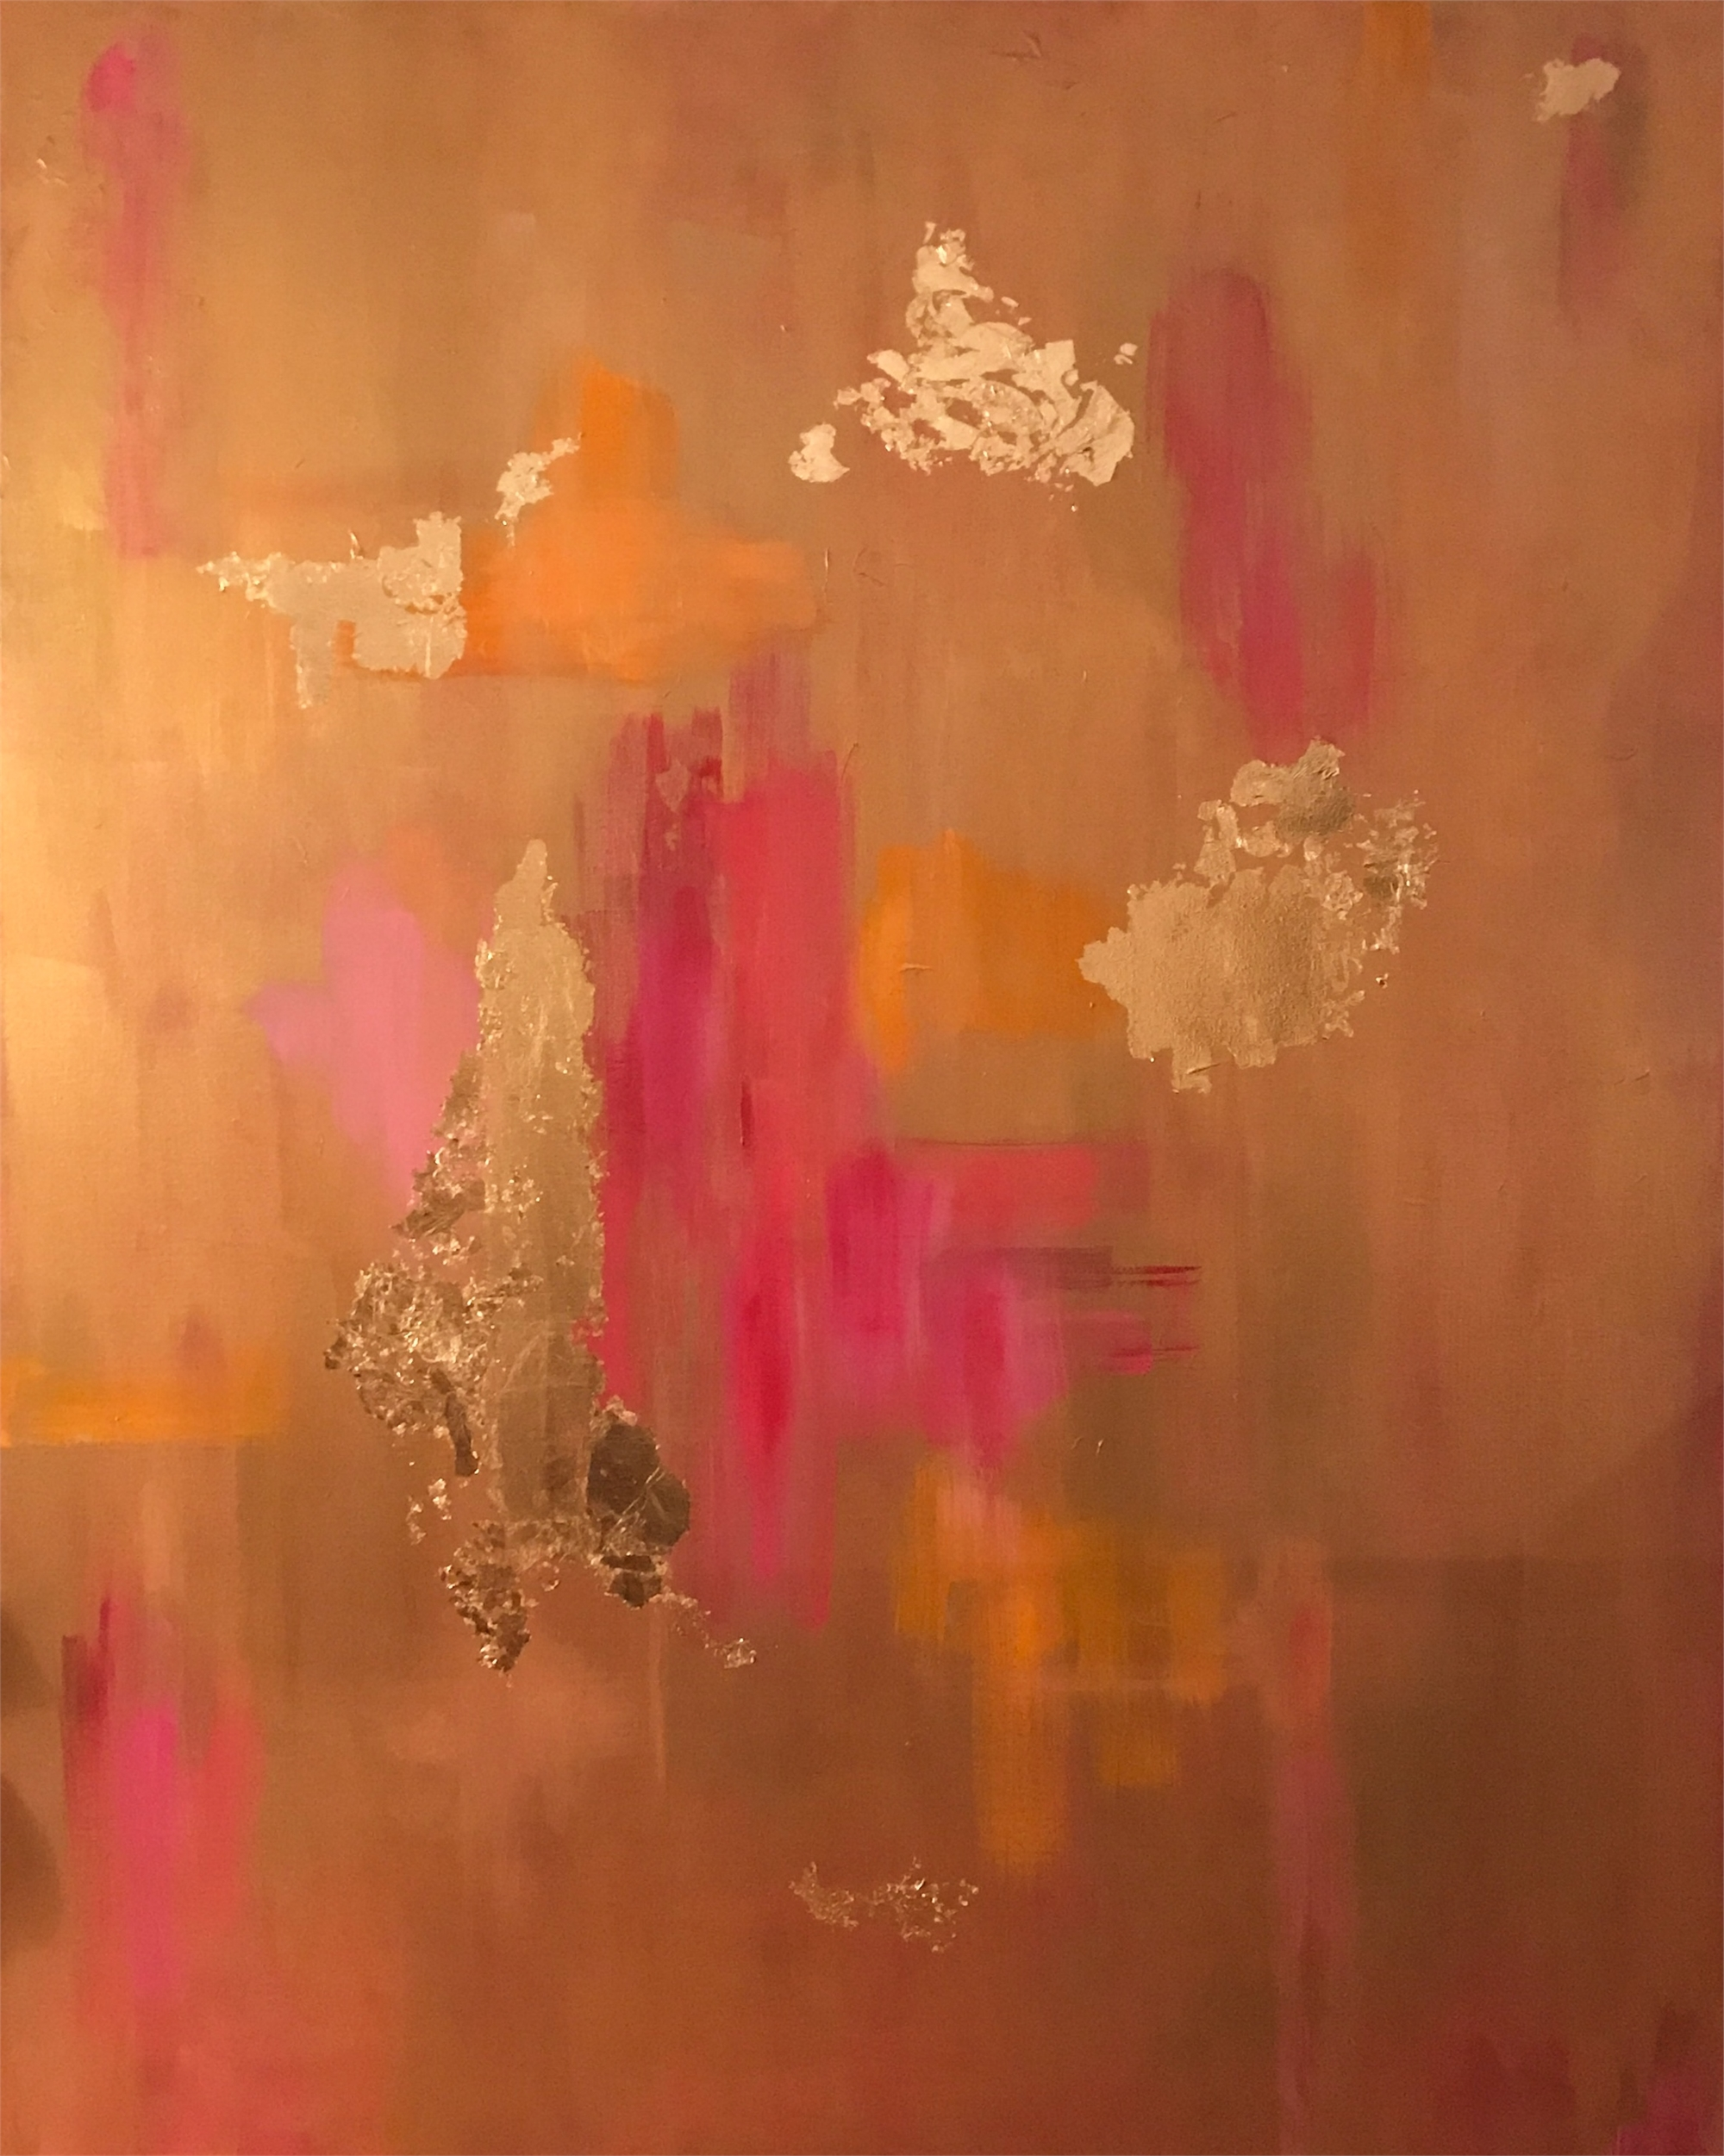 Beauty Series - Orange and Pink by Leslie Poteet Busker